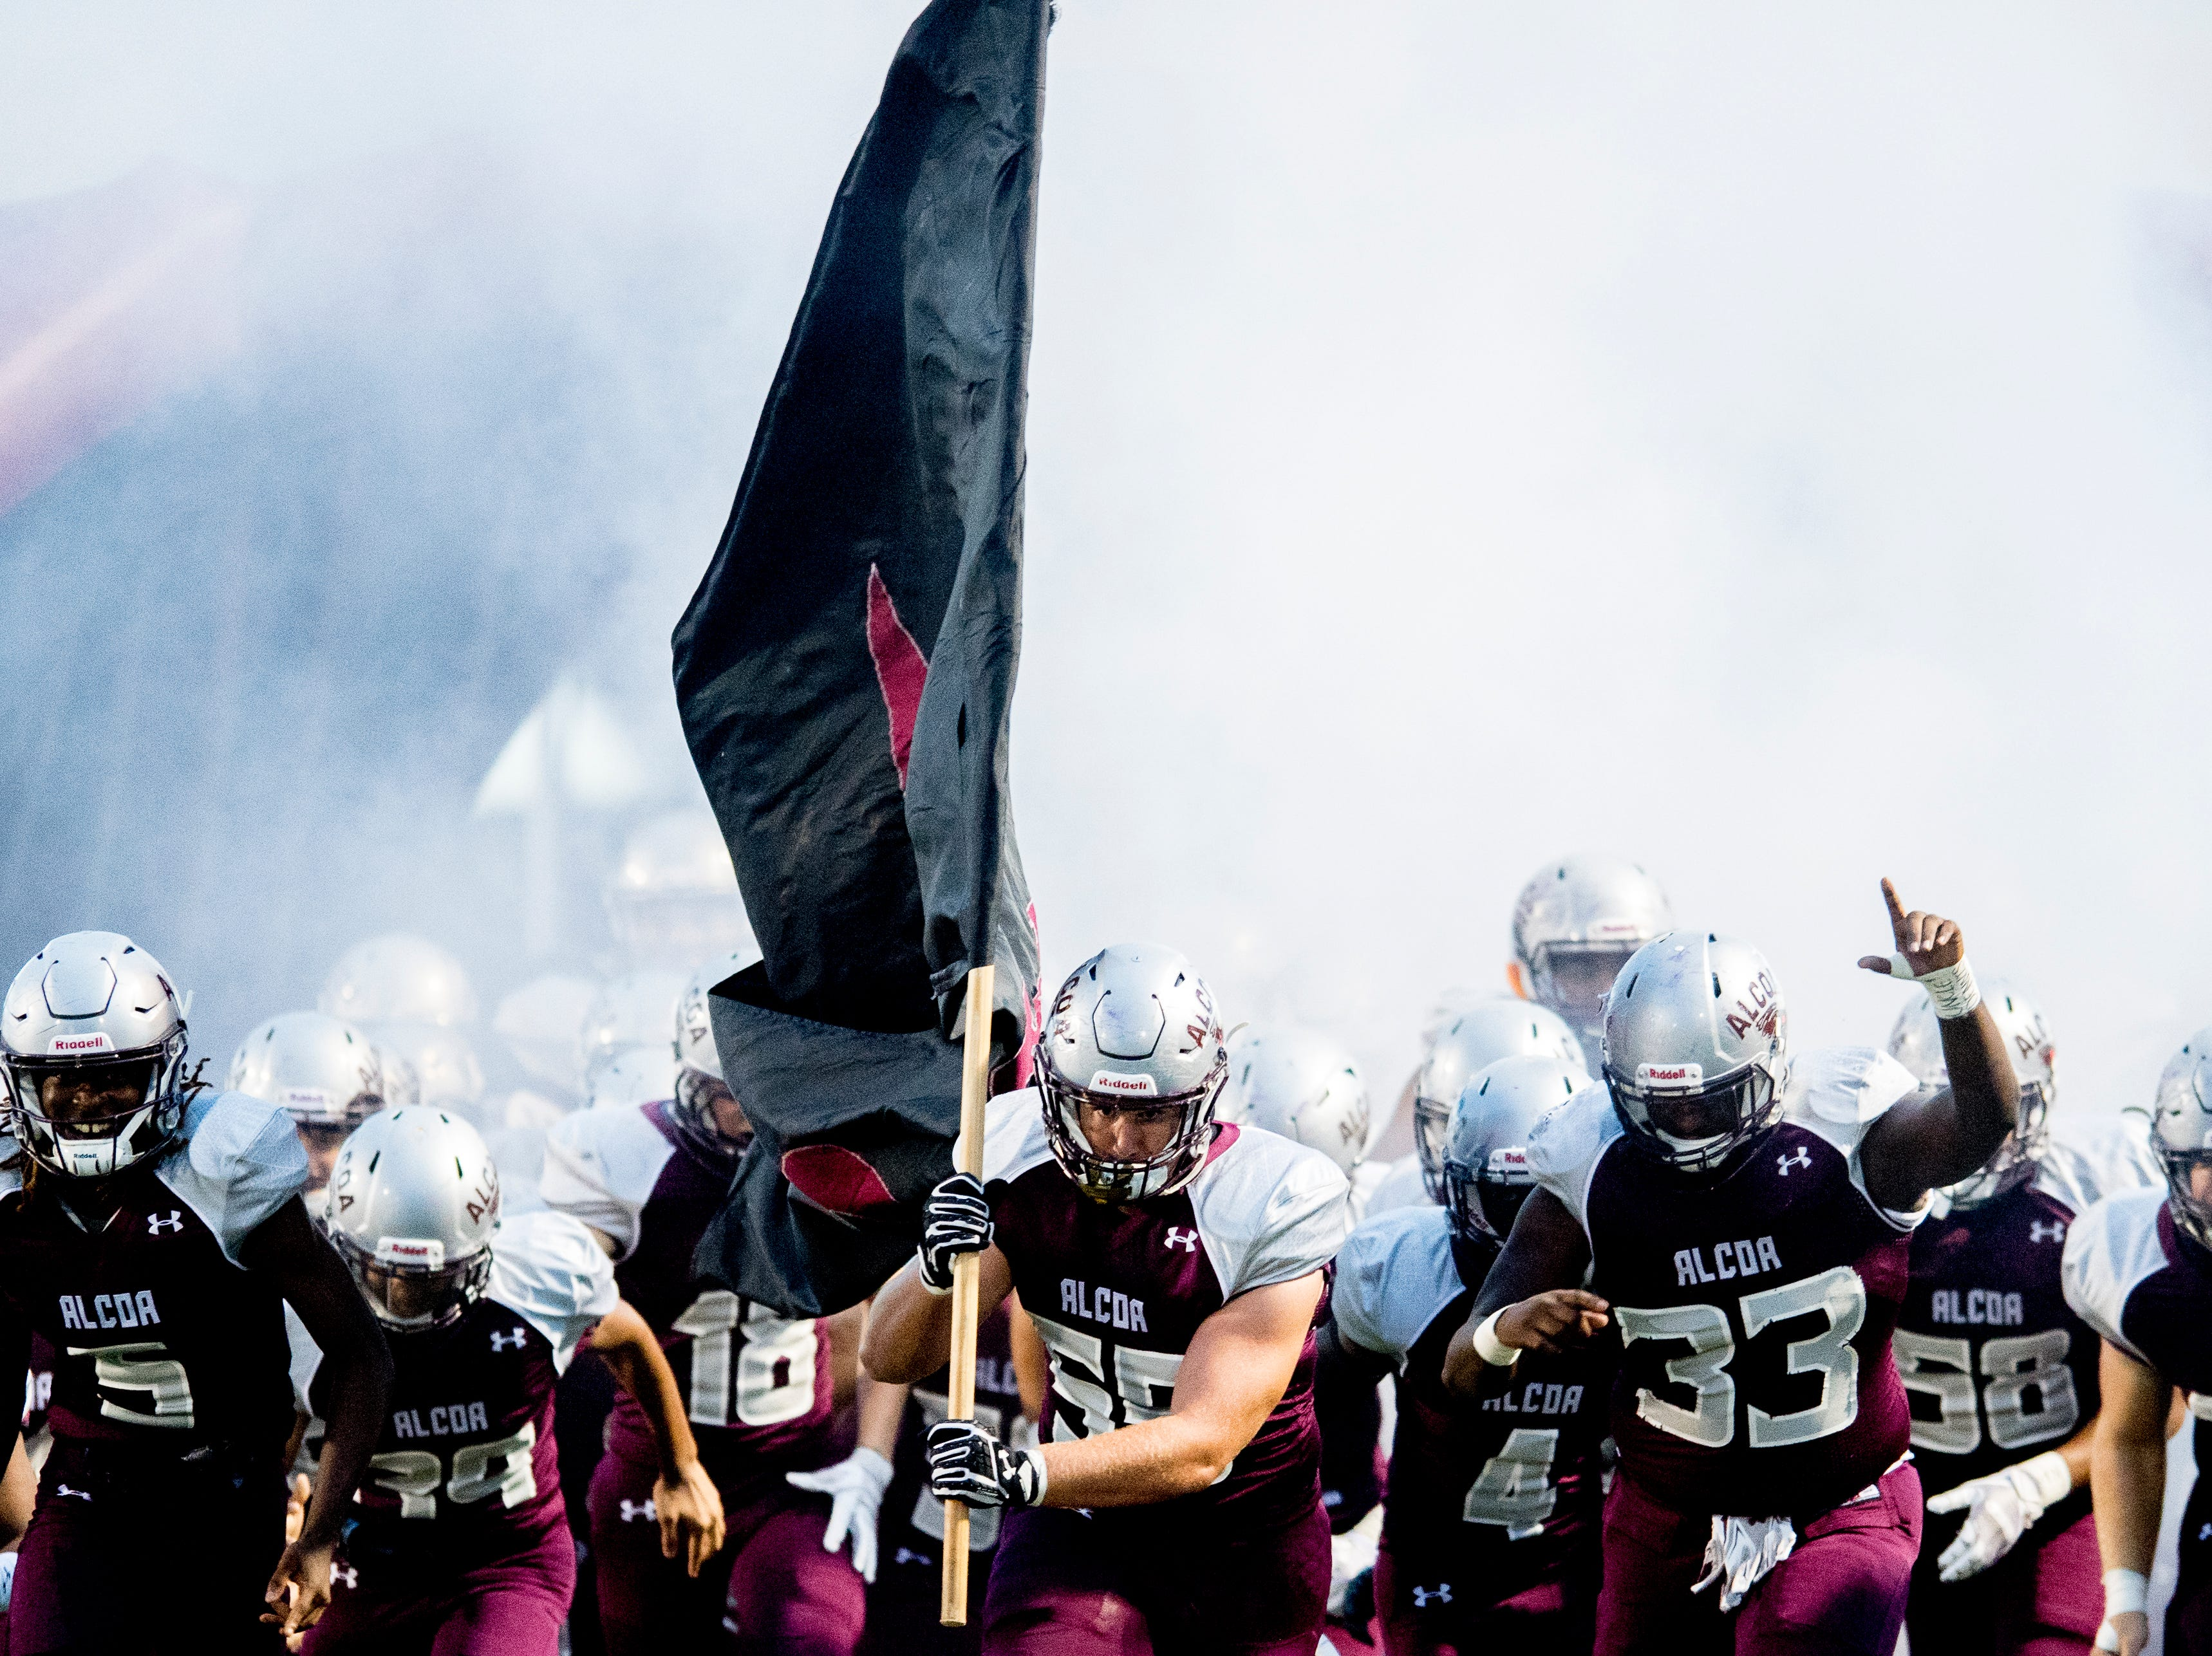 Alcoa storms the field during a game between Alcoa and Dobyns-Bennett at Alcoa High School in Alcoa, Tennessee on Friday, September 21, 2018.